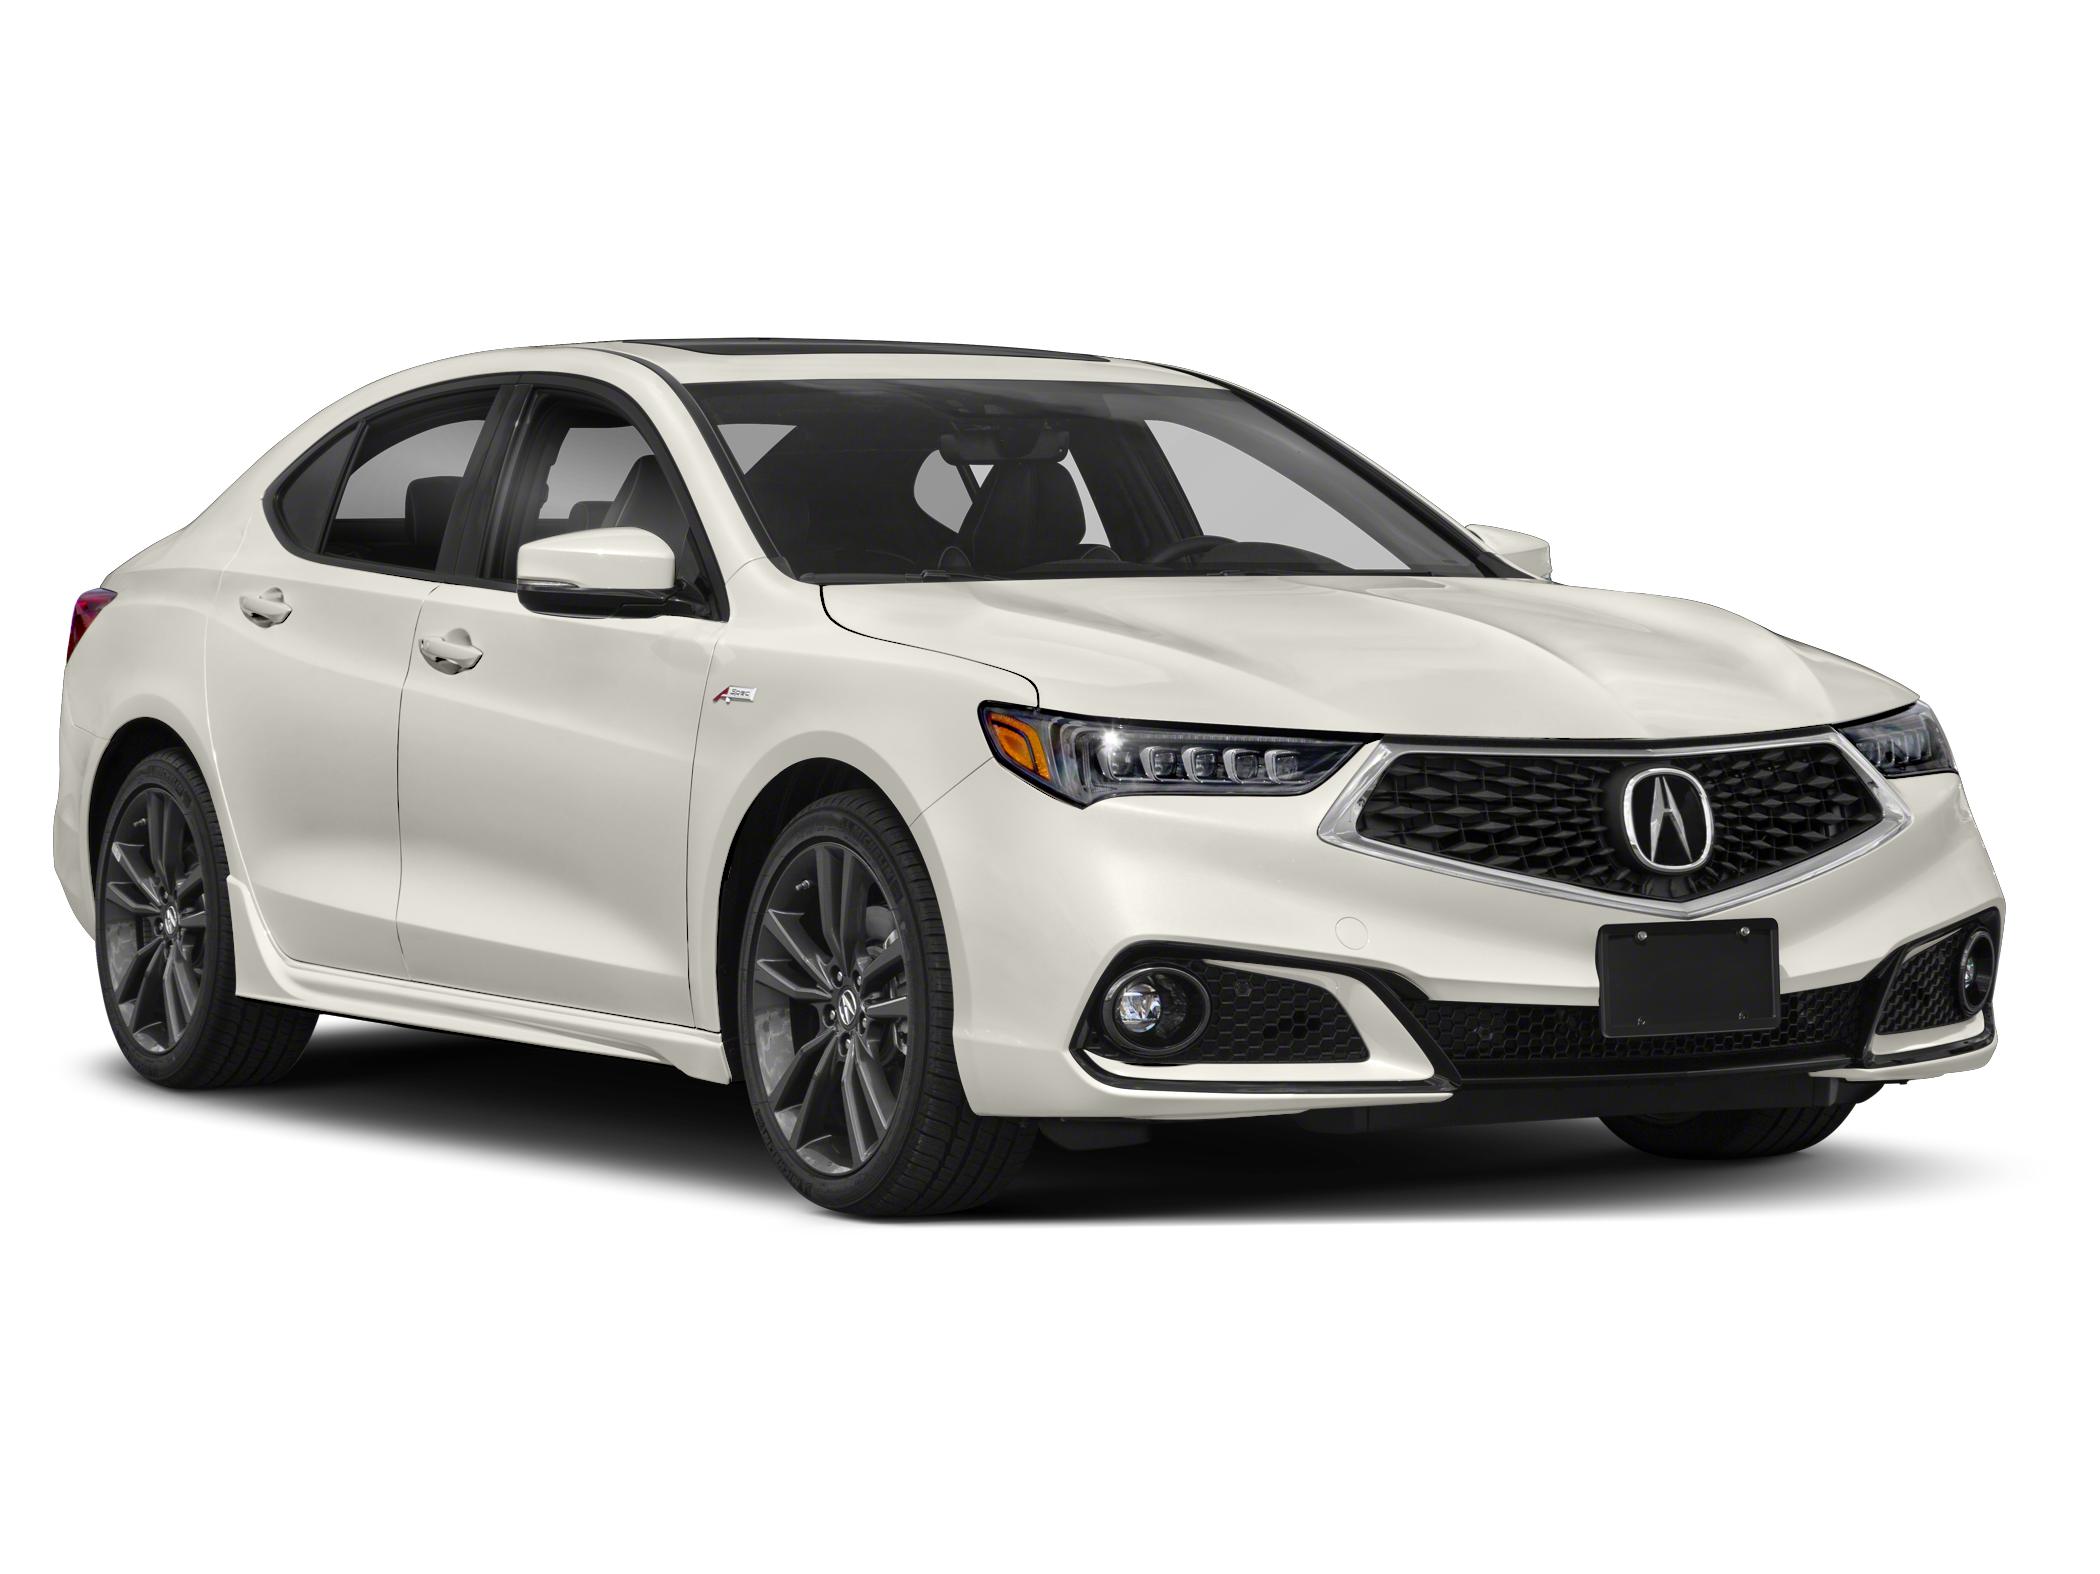 2020 acura tlx elite a-spec : price, specs & review